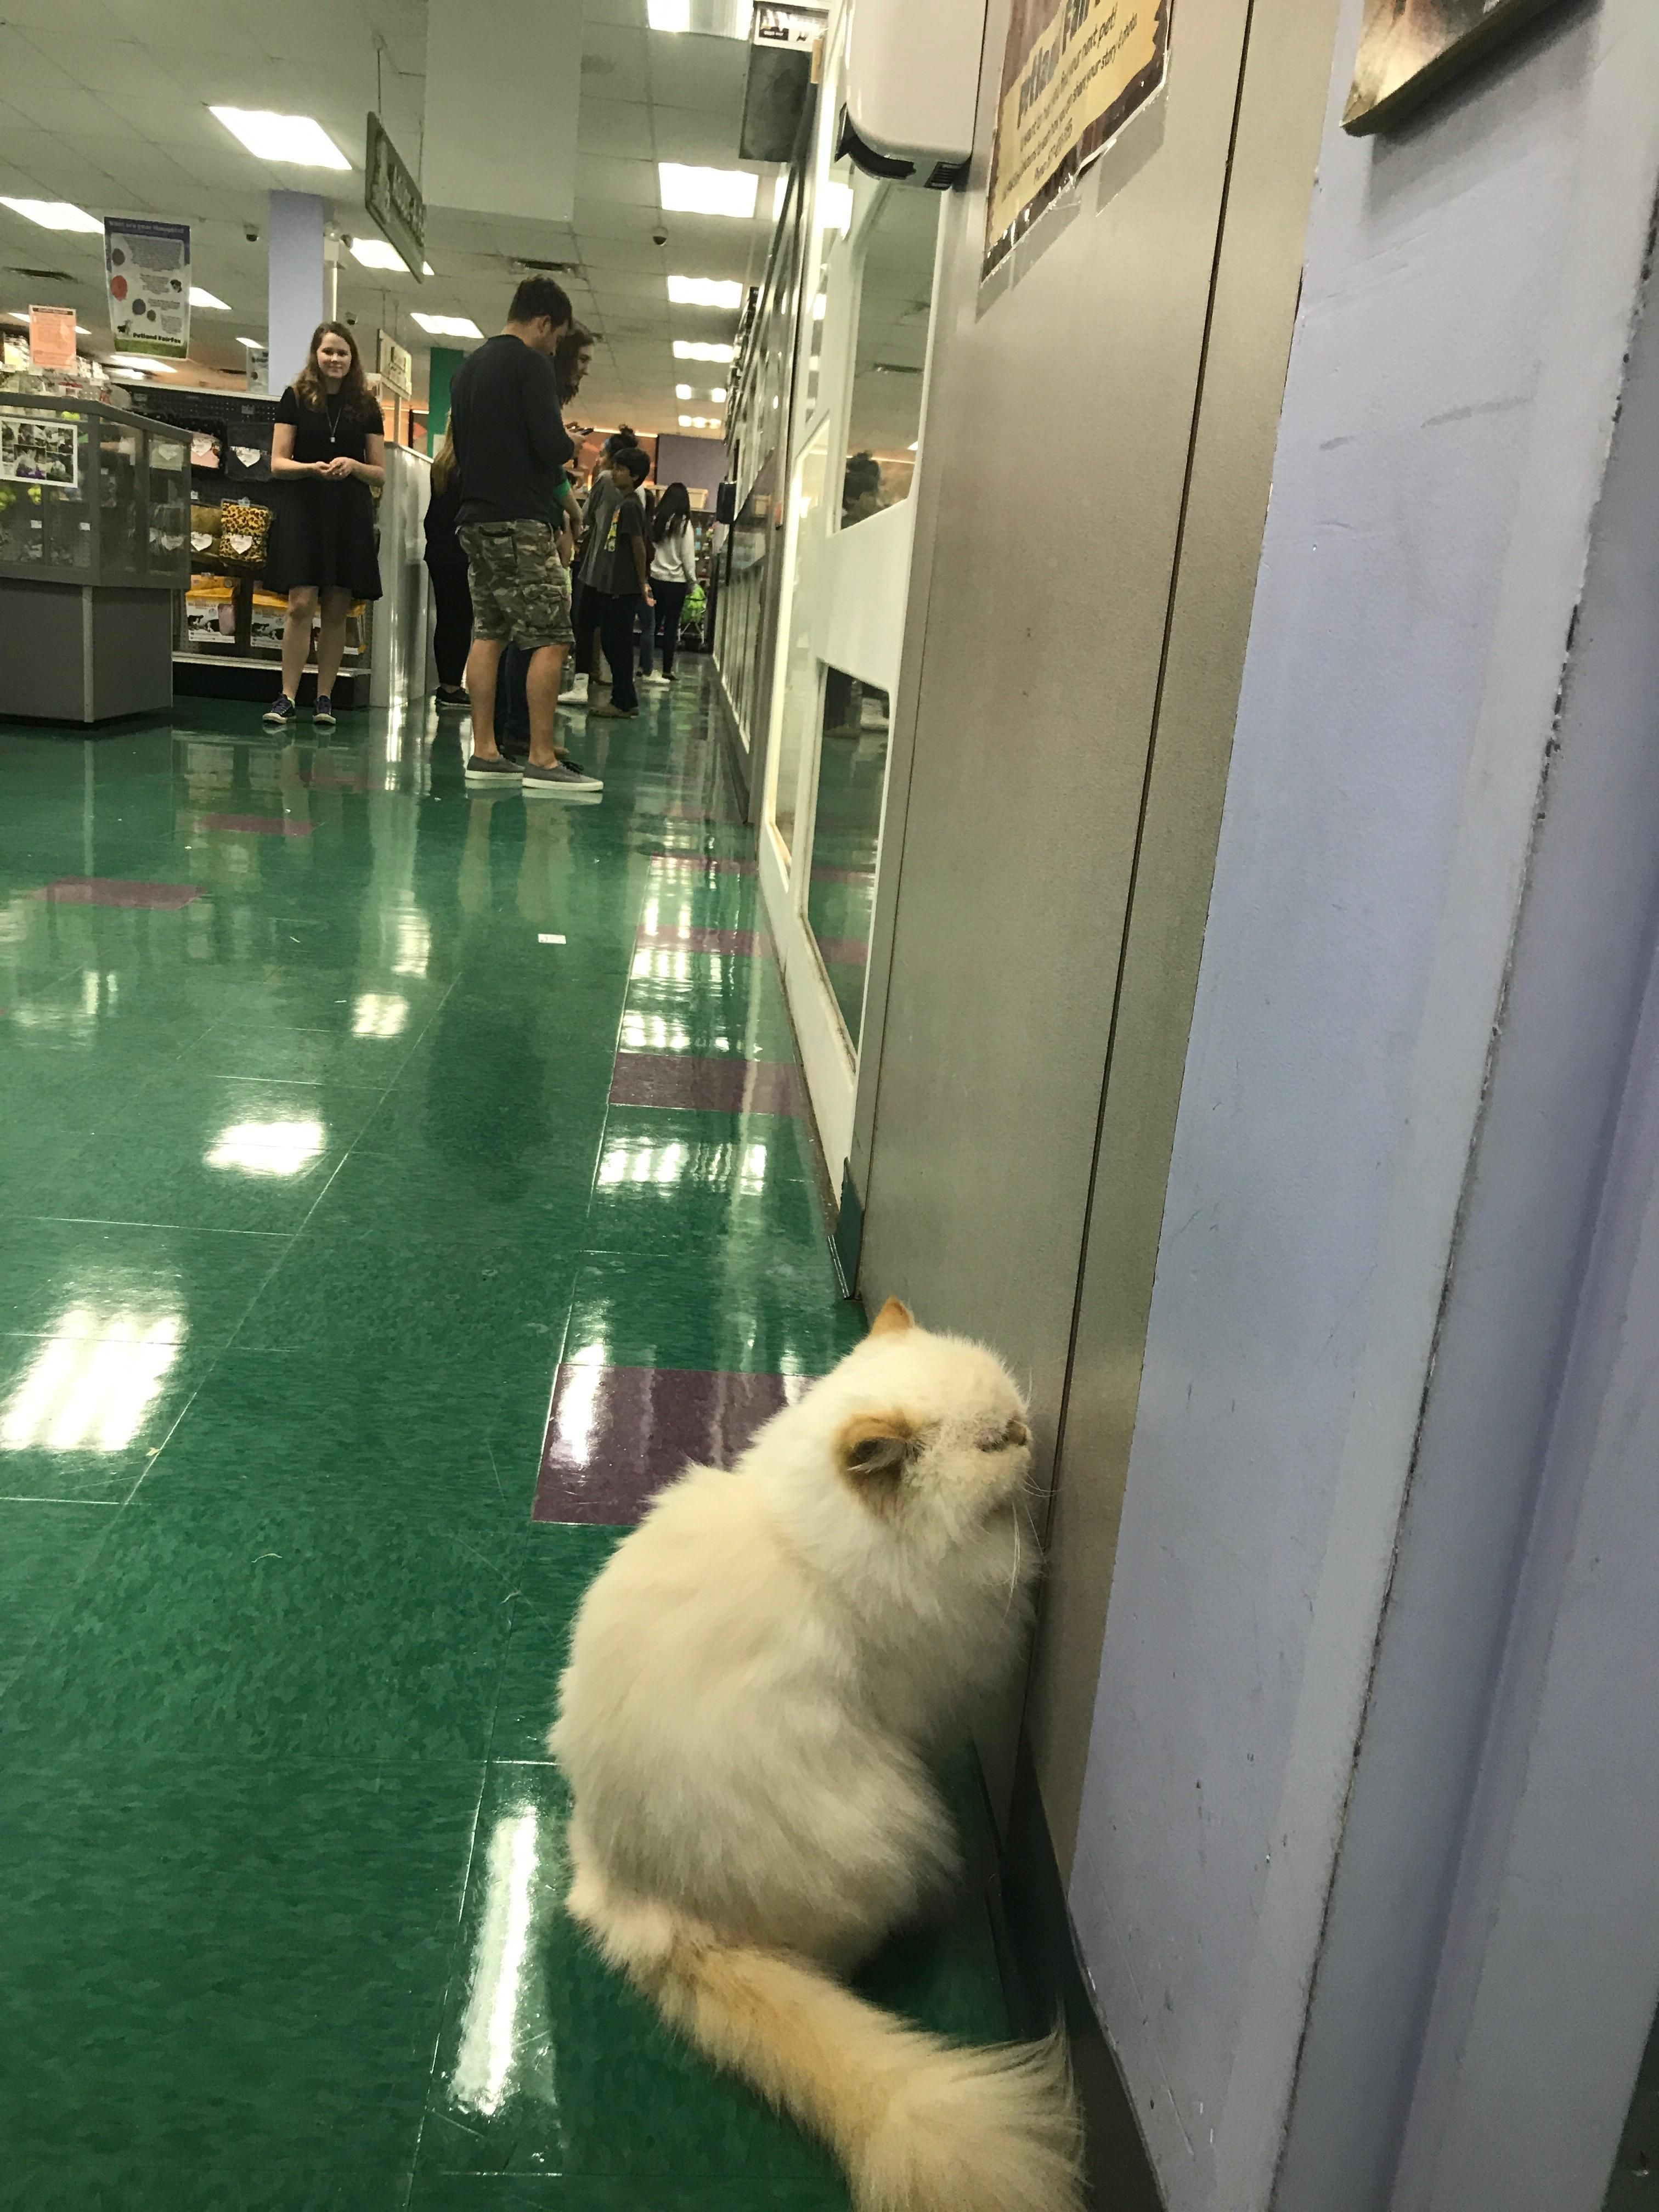 My Sis Goes To Her Local Pet Store Where The Owners Cat Gets Shy And Tries To Become Part Of The Wall Https Ift Tt 2slrijm Pet Store Pets Cat Day